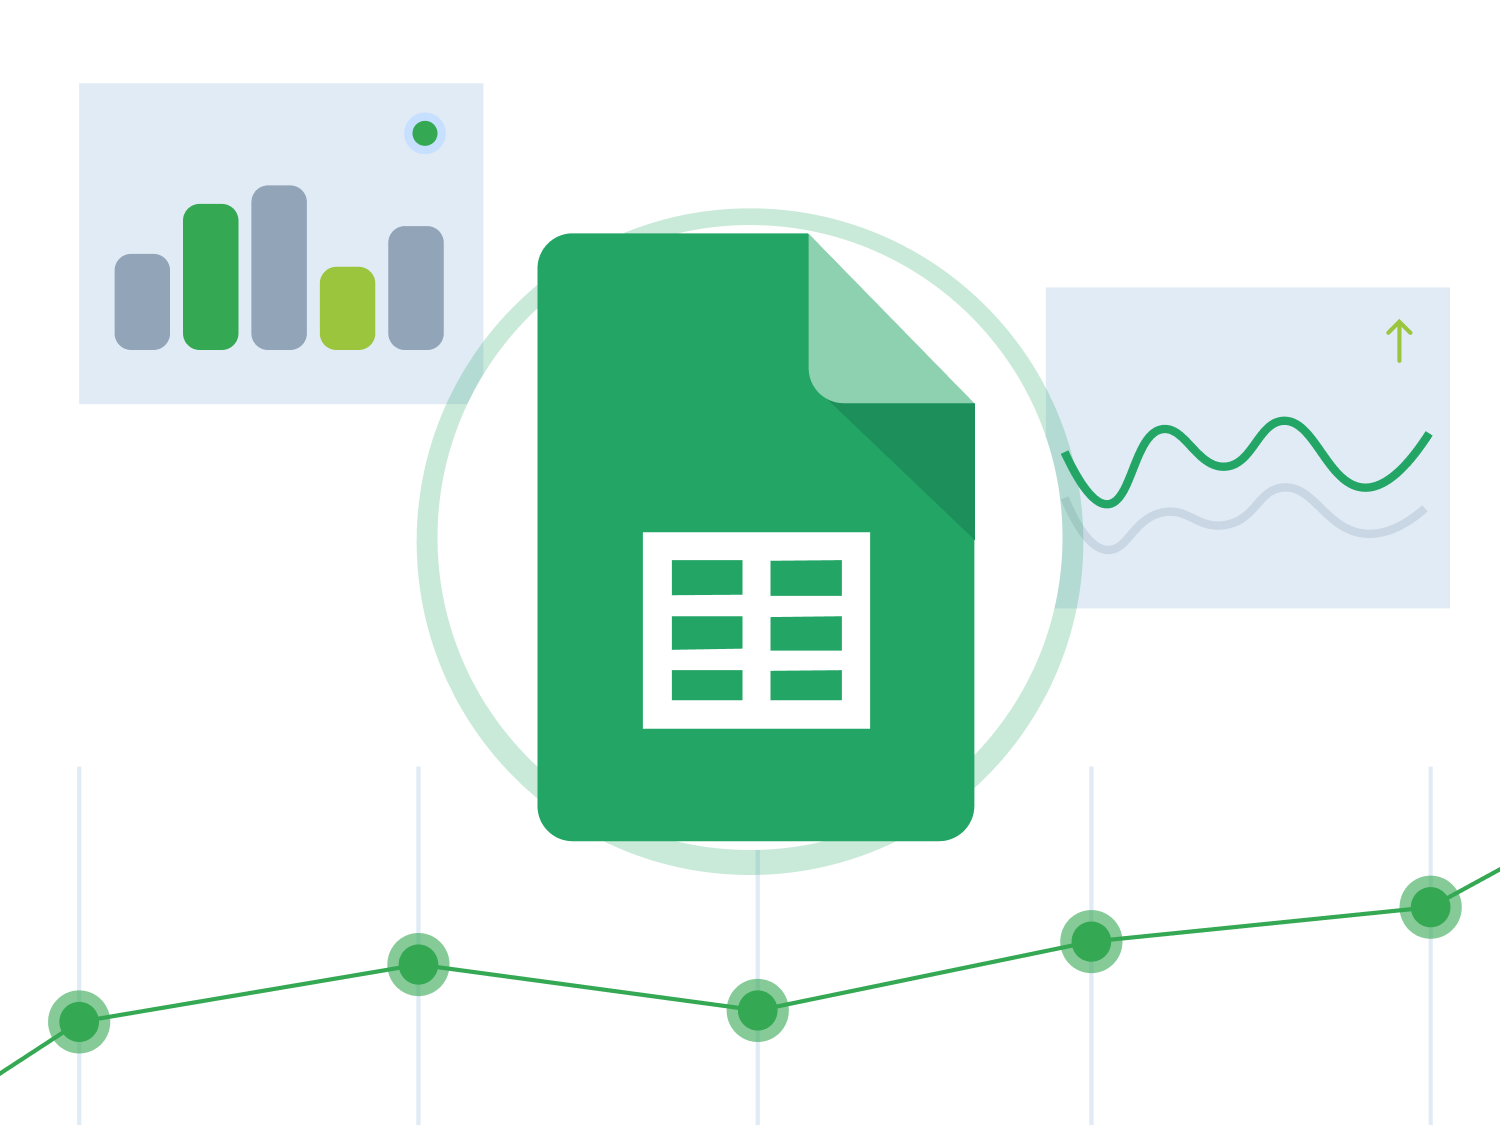 Google Sheets logo with charts in the background